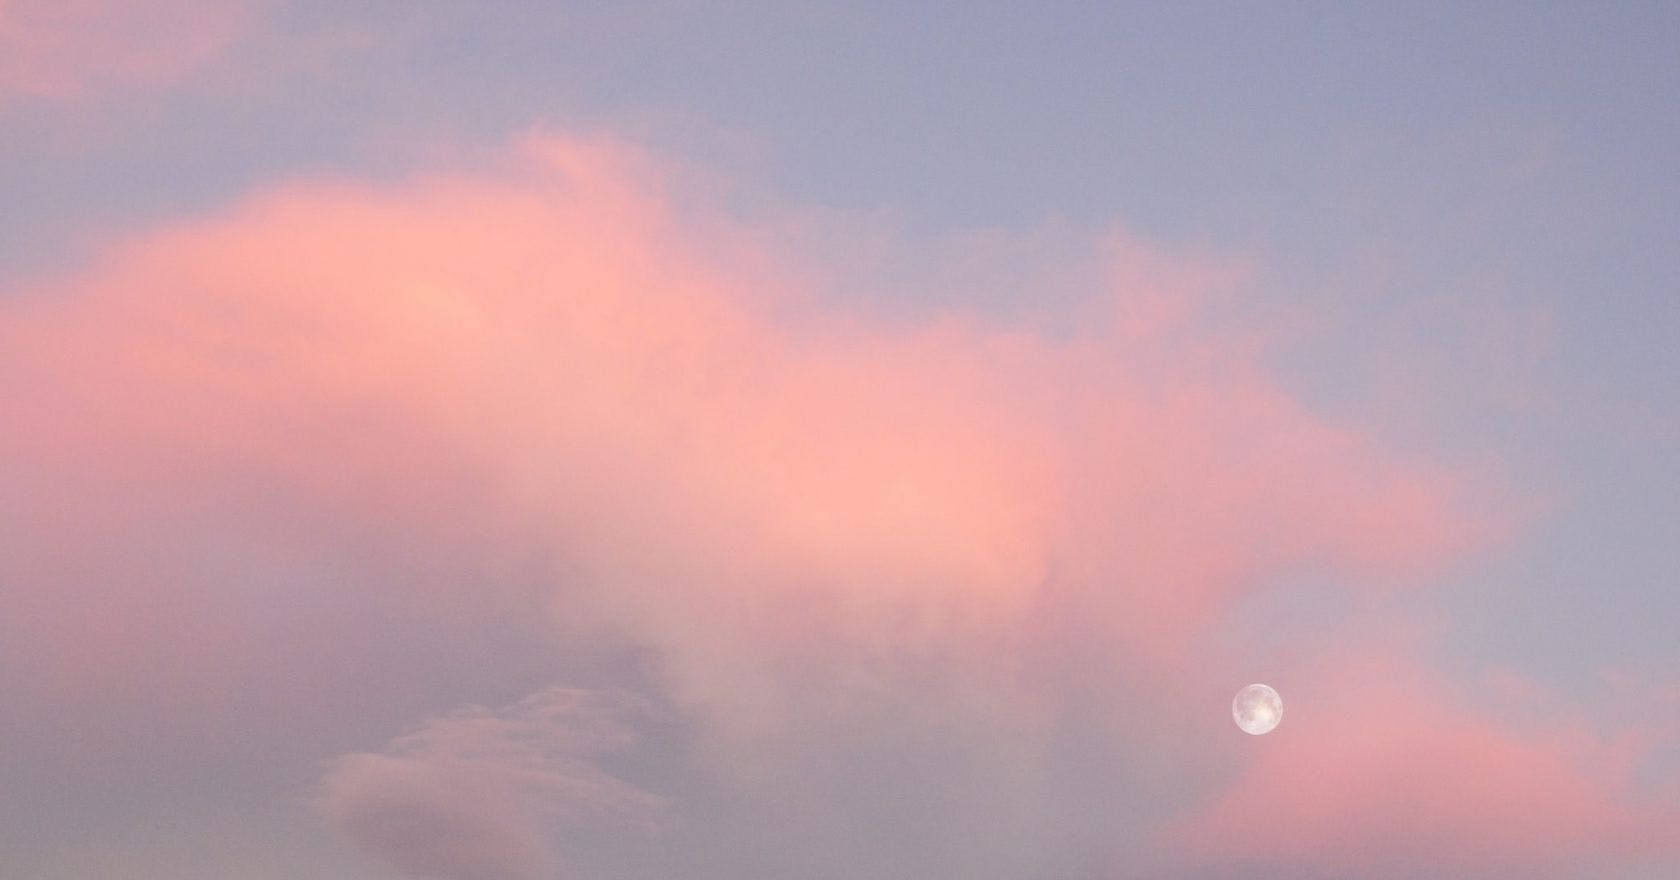 Curious about tonight's pink supermoon? Here's your guide to what it means